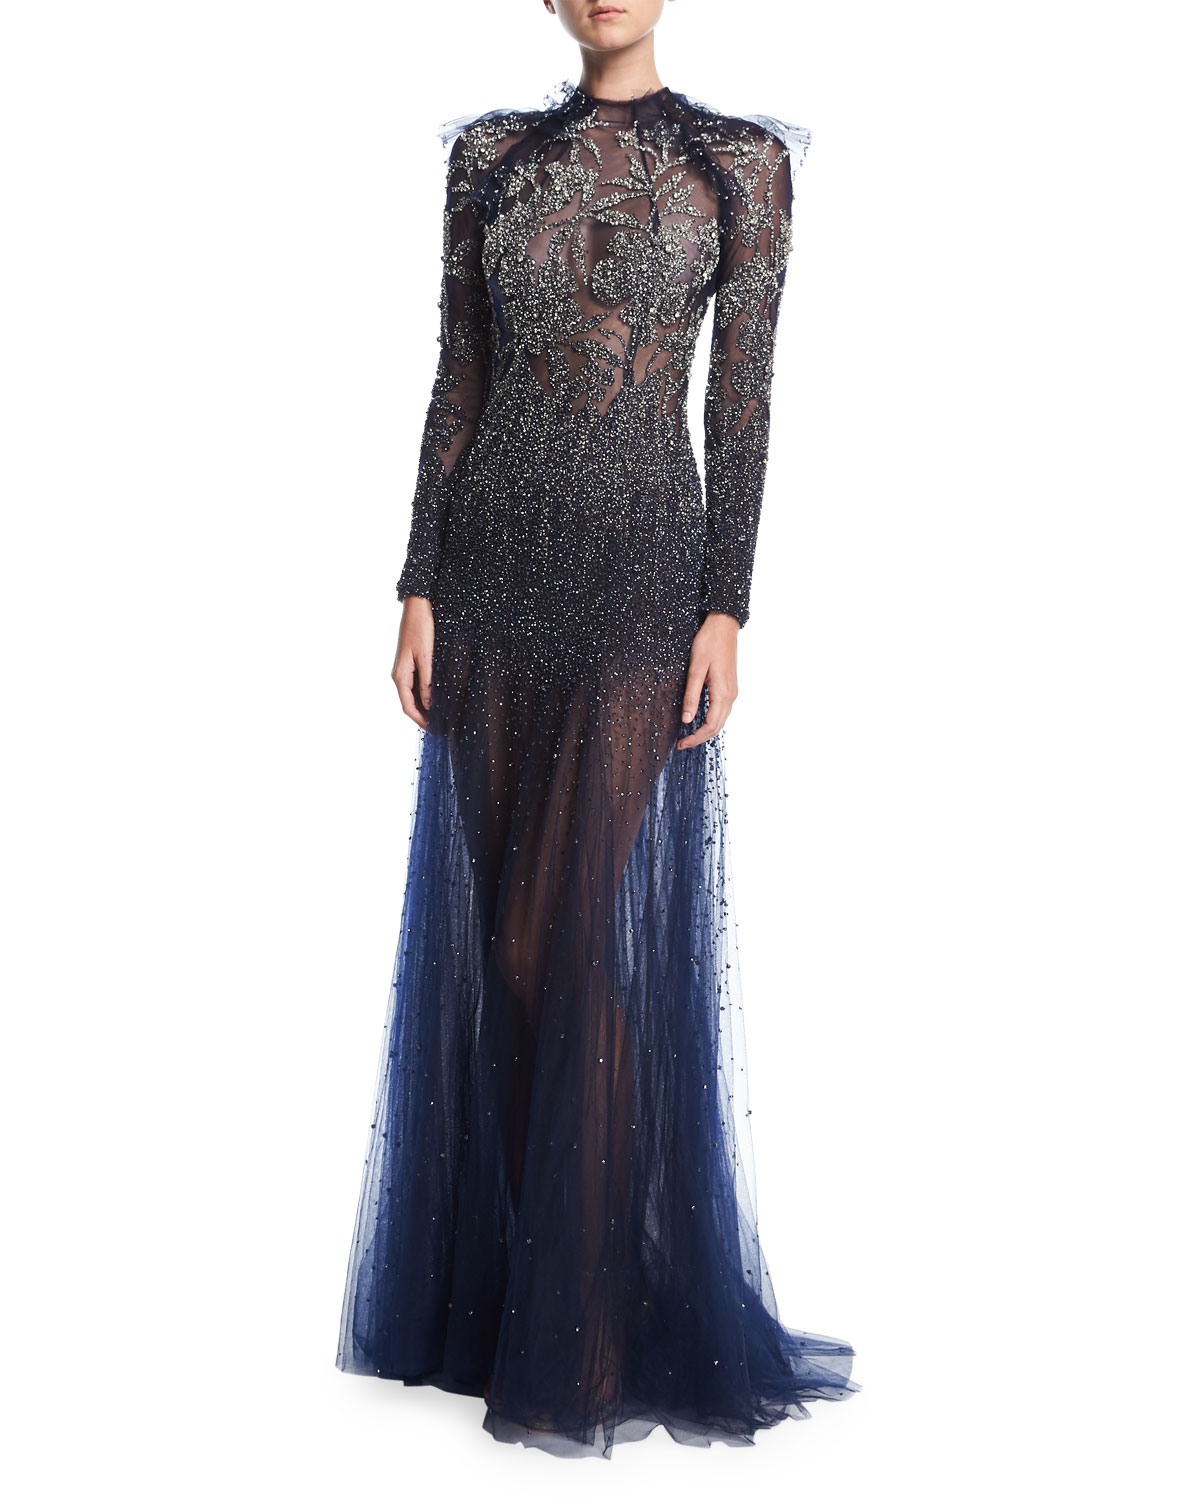 Jenny Packham Floral-Embellished Long-Sleeve Illusion Gown | Neiman ...